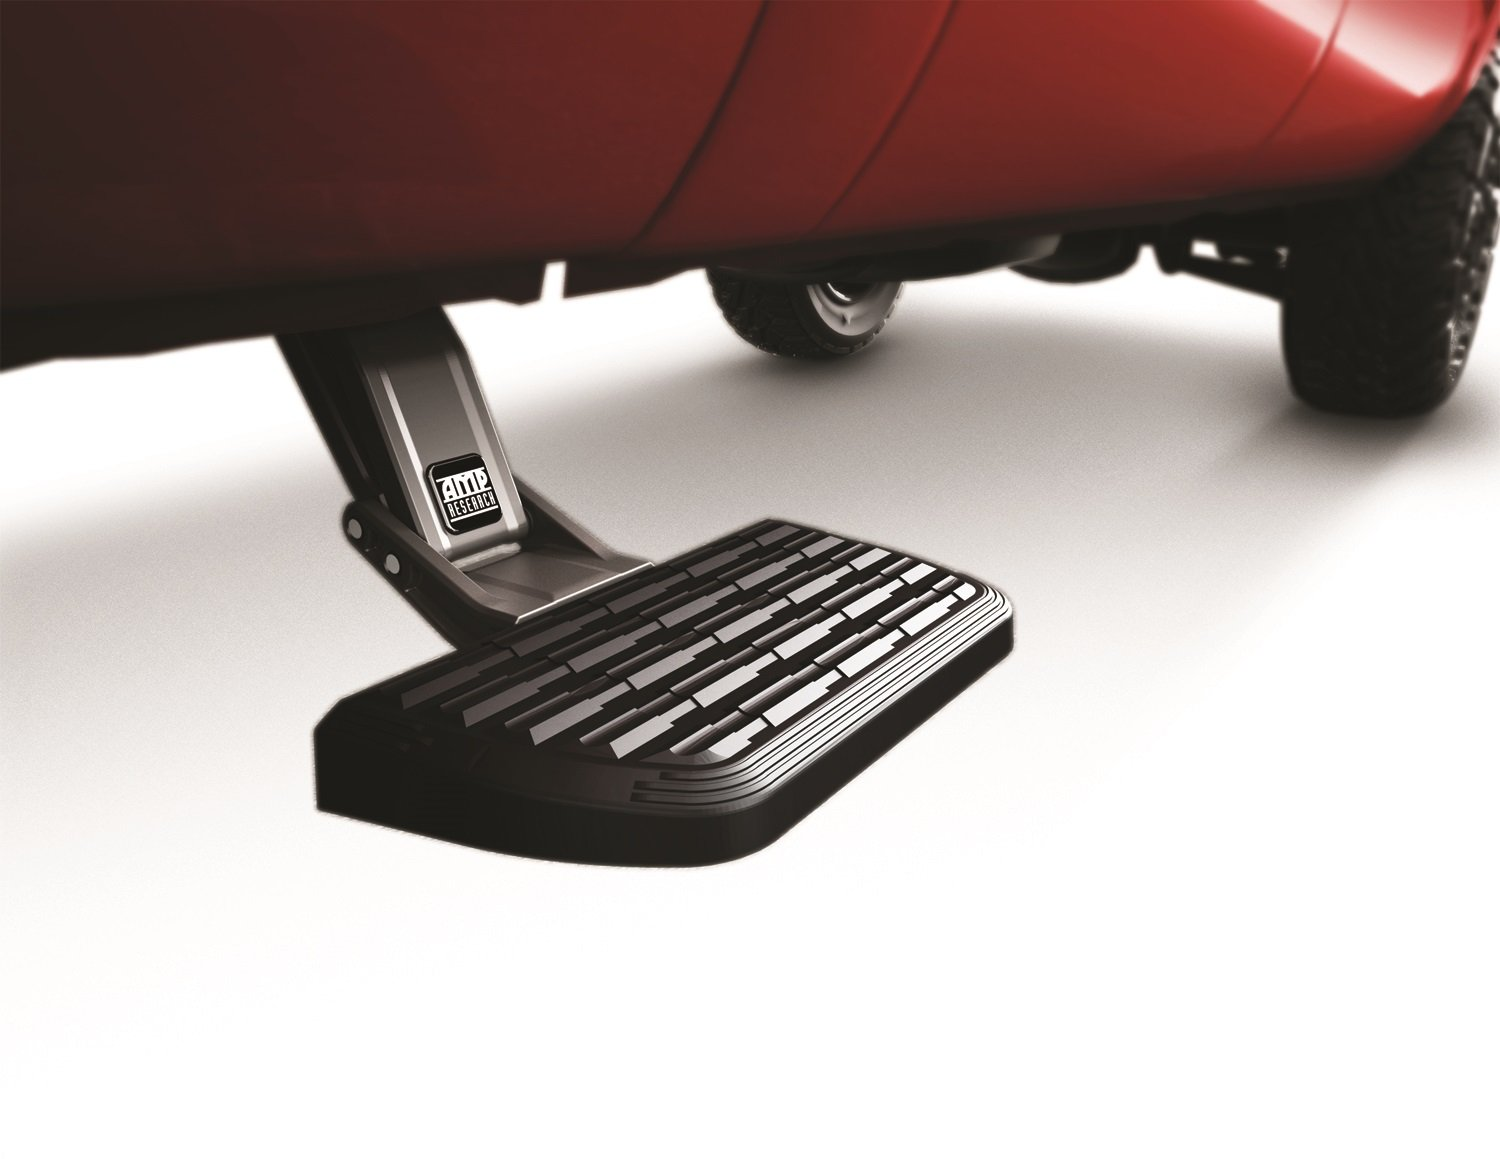 AMP Research 75403-01A BedStep2 Retractable Truck Bed Side Step for 1999-2016 Ford F-250/F-350, 2008-2016 Ford F-450/F-550 (All Beds) by AMP Research